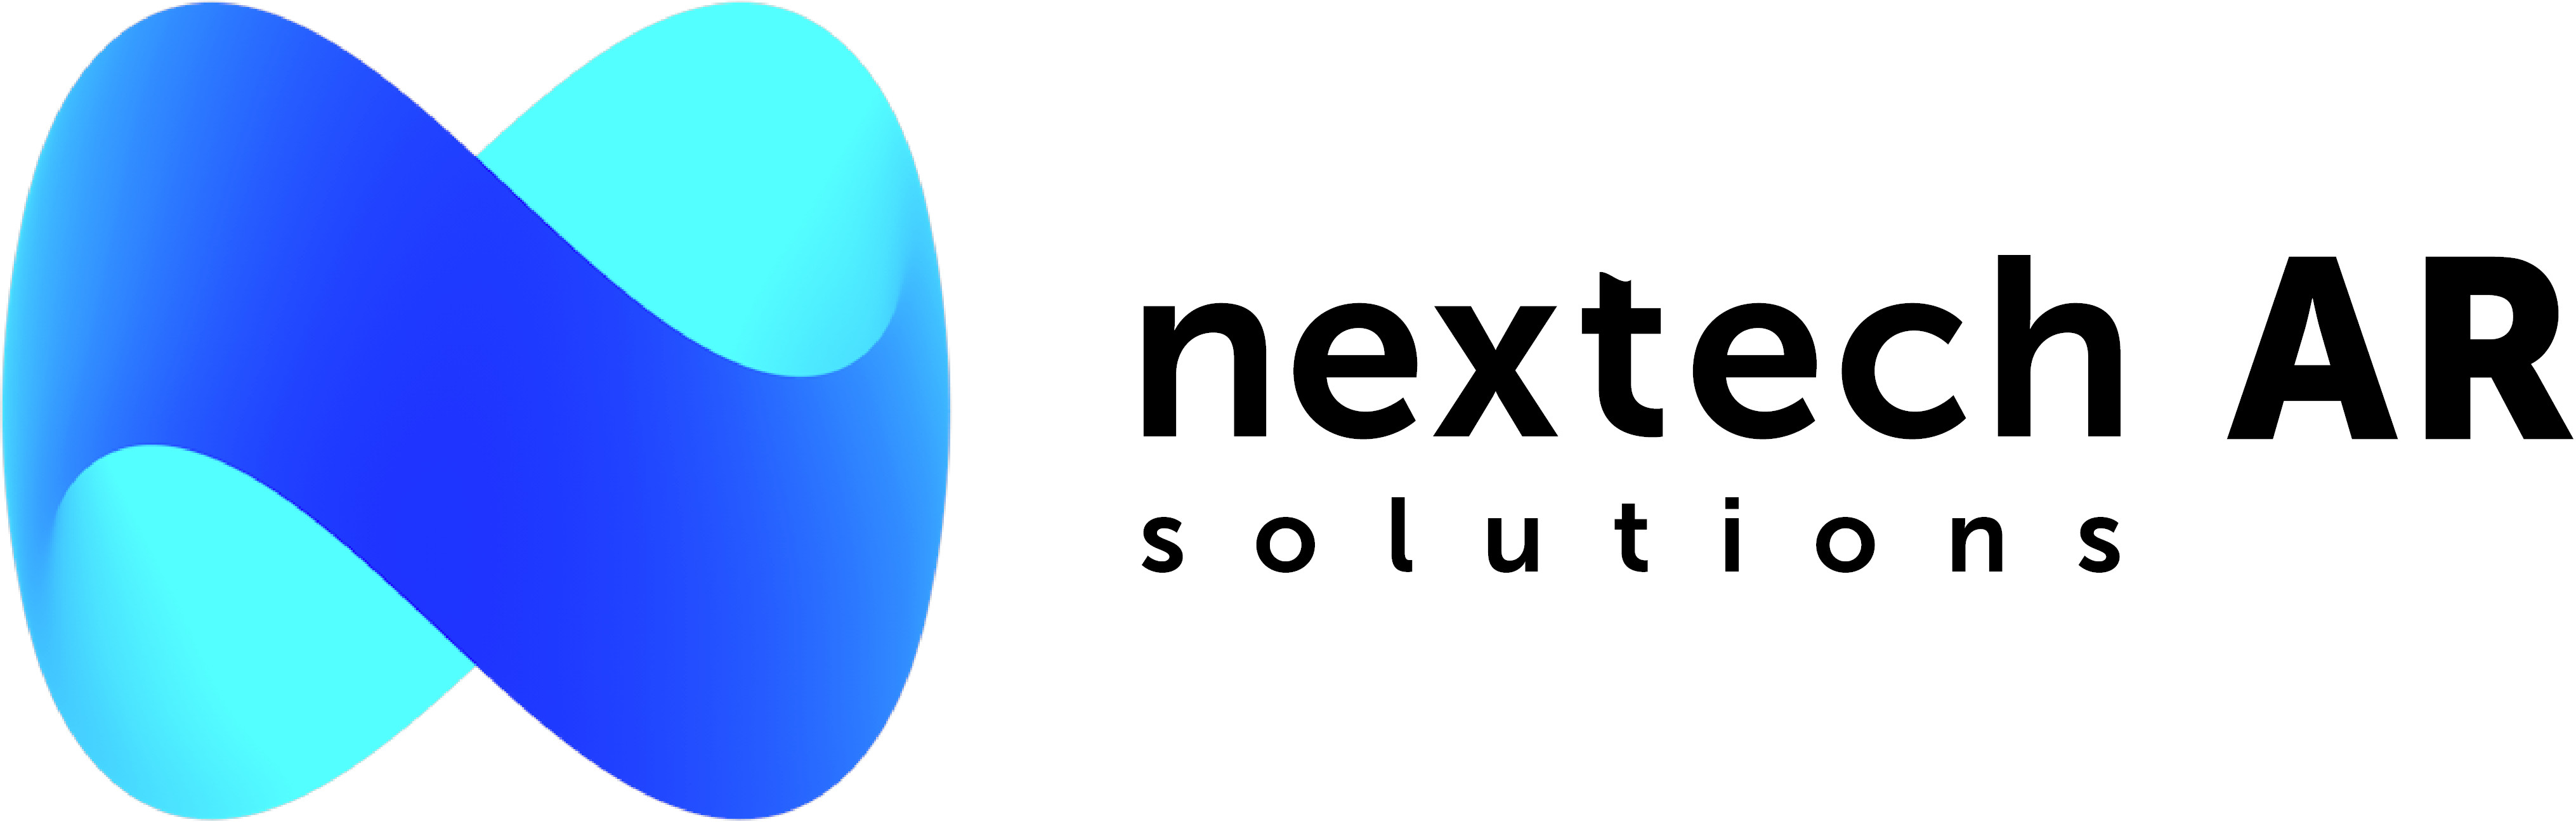 Nextech AR Rapidly Expands Enterprise Salesforce with Fastly Executive Zak Mcleod and Salesforce